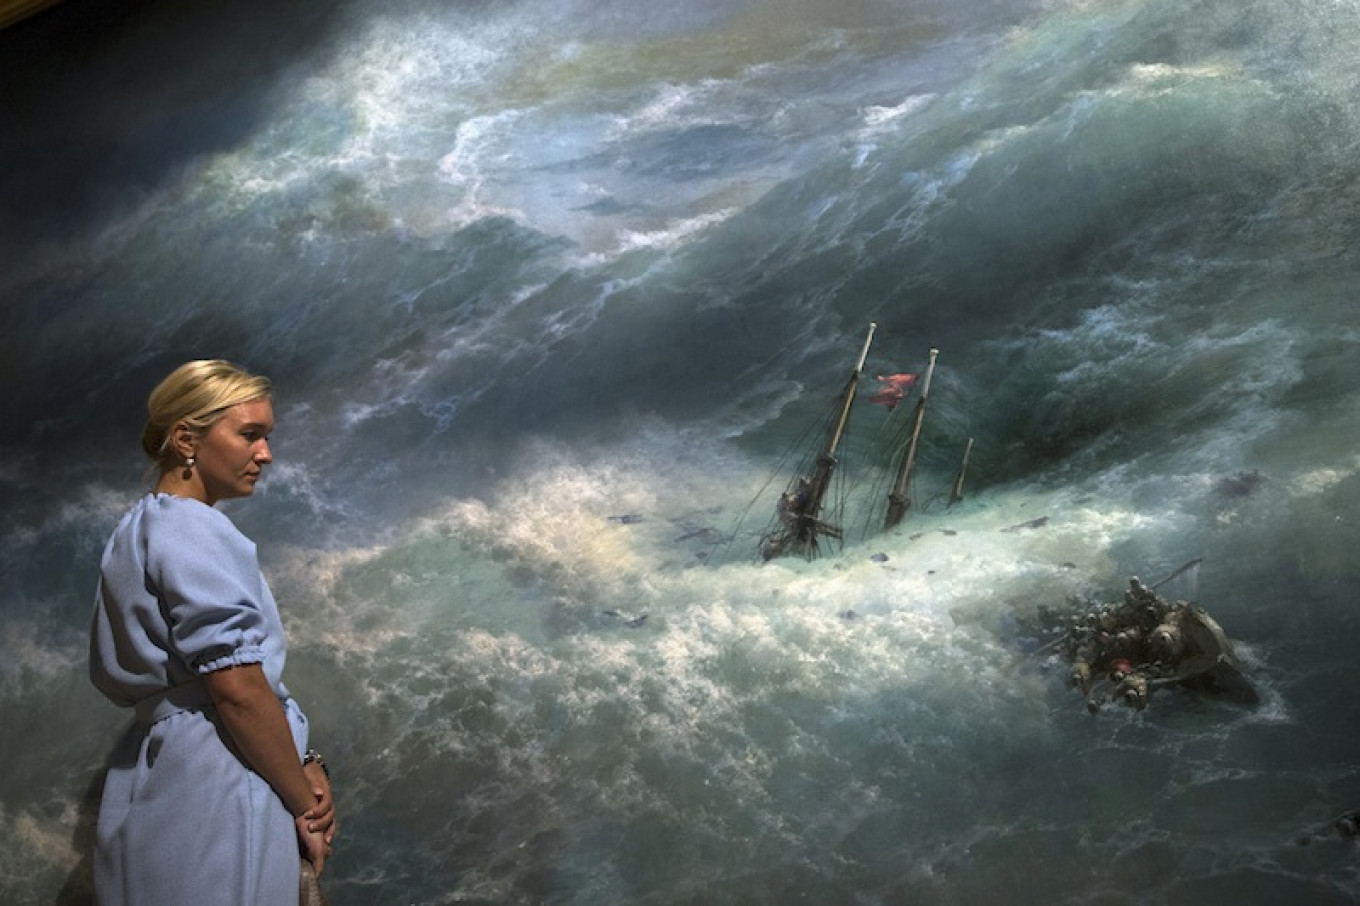 """A woman looks at the """"Wave"""" painting by Ivan Aivazovsky in Tretyakov Gallery, Moscow, Russia. Pavel Golovkin / AP"""